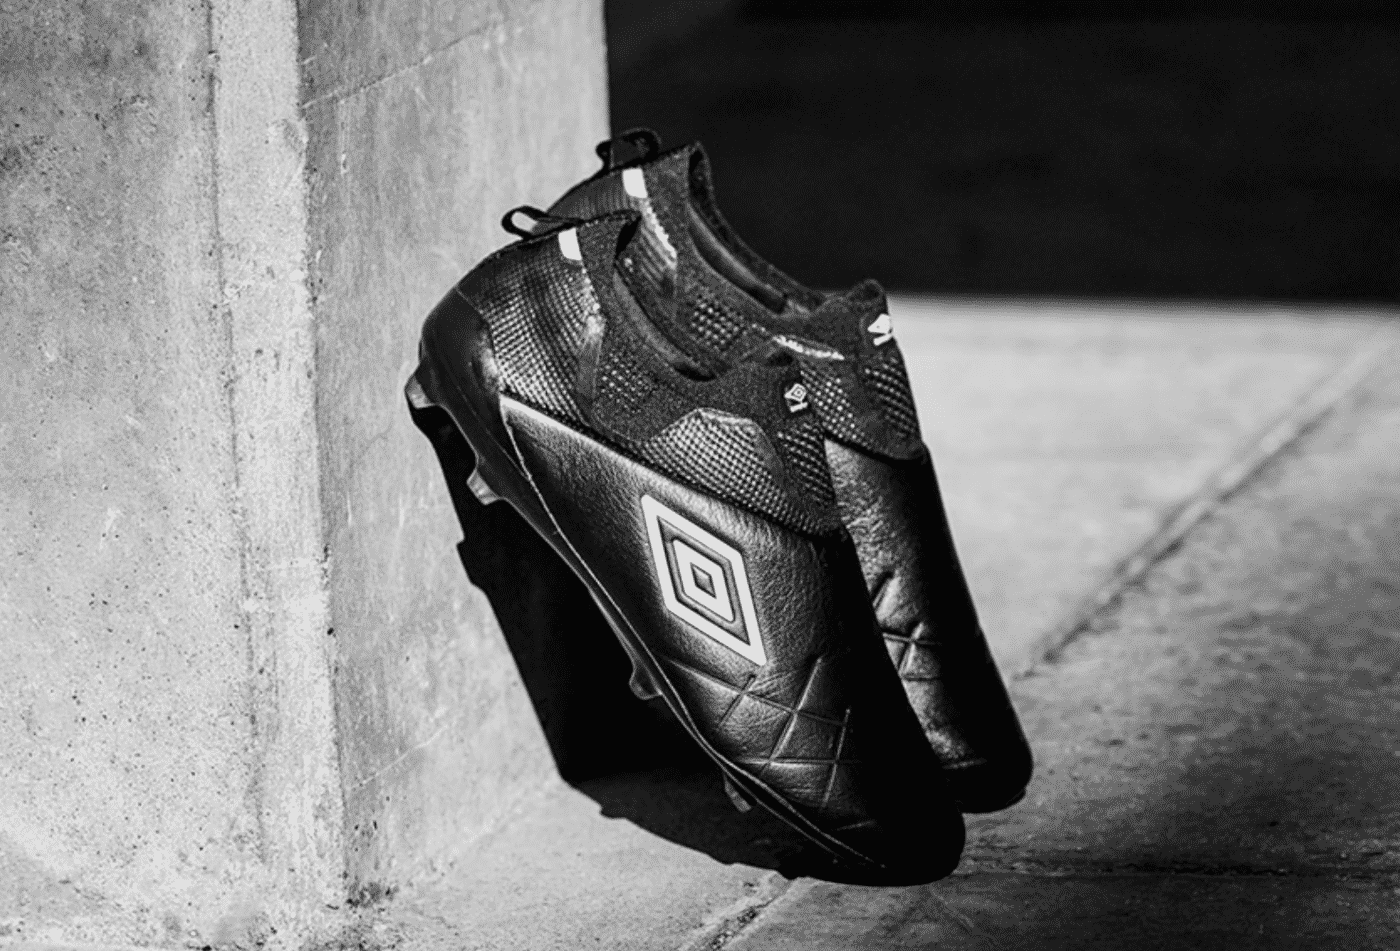 umbro-velocita-4-blackout-1